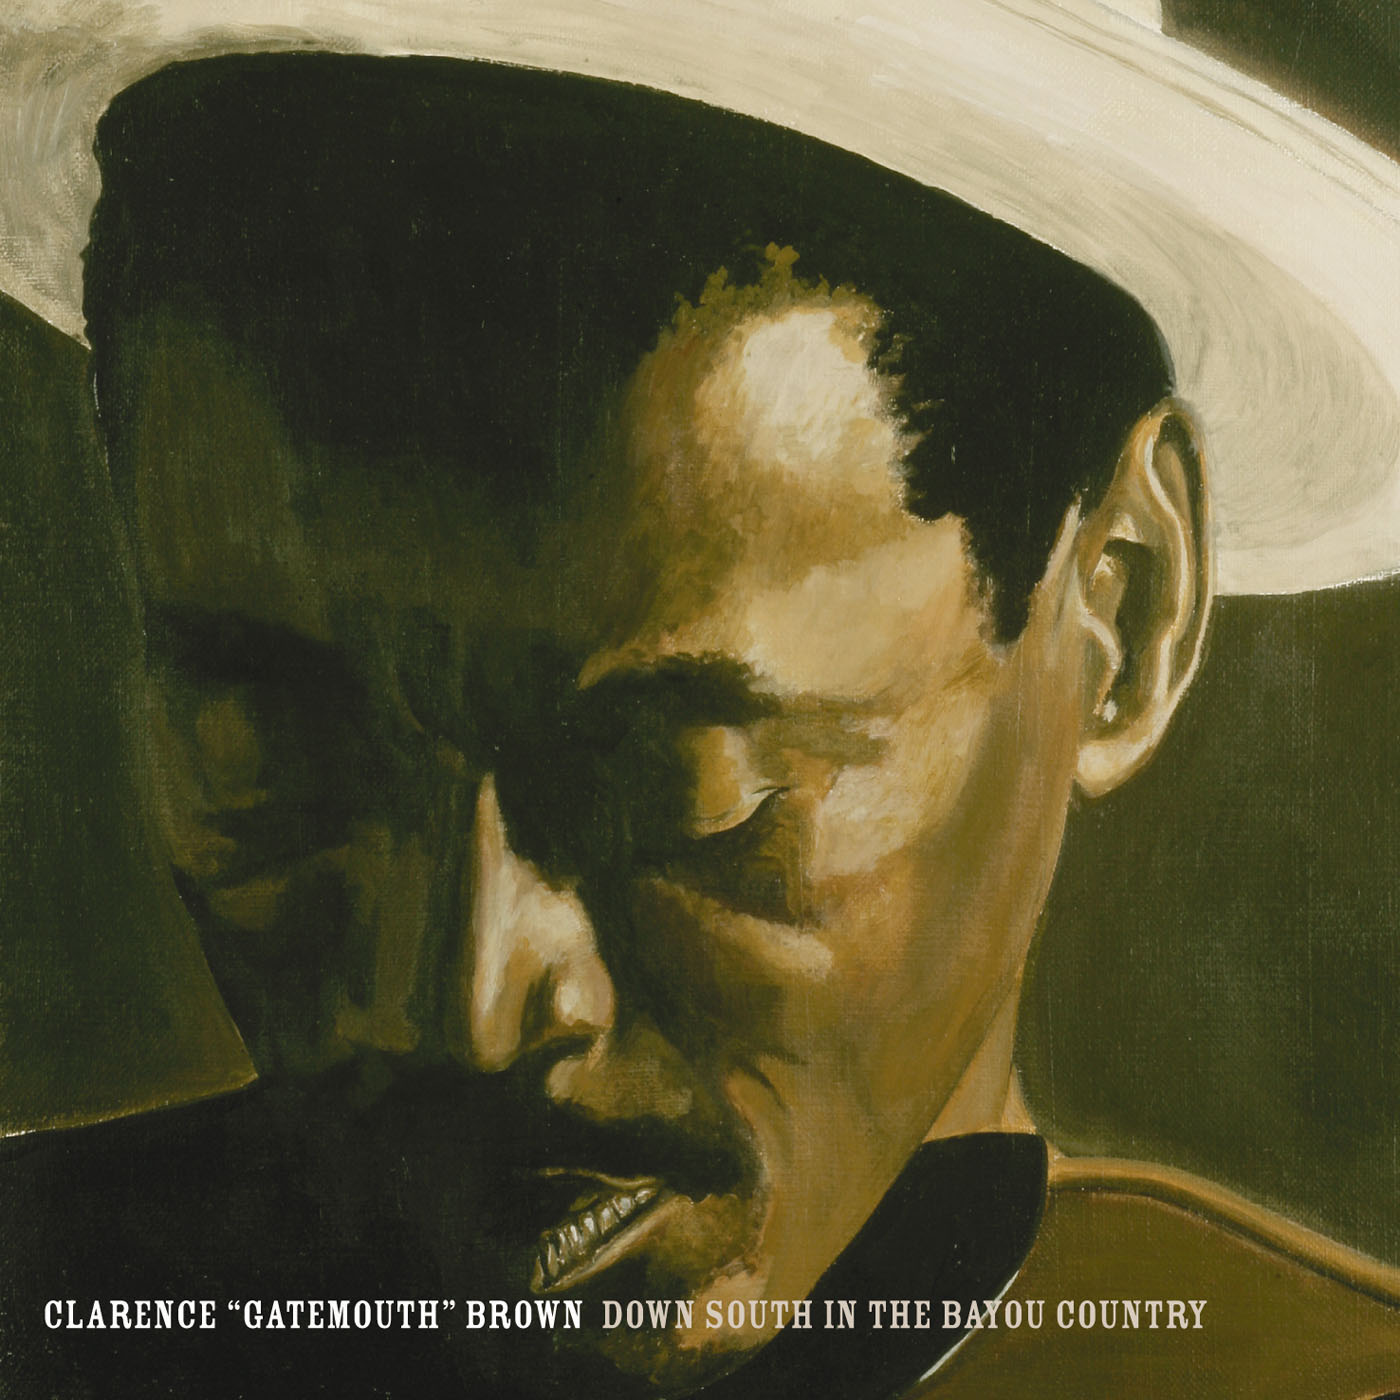 Down South in the Bayou Country by Clarence Gatemouth Brown